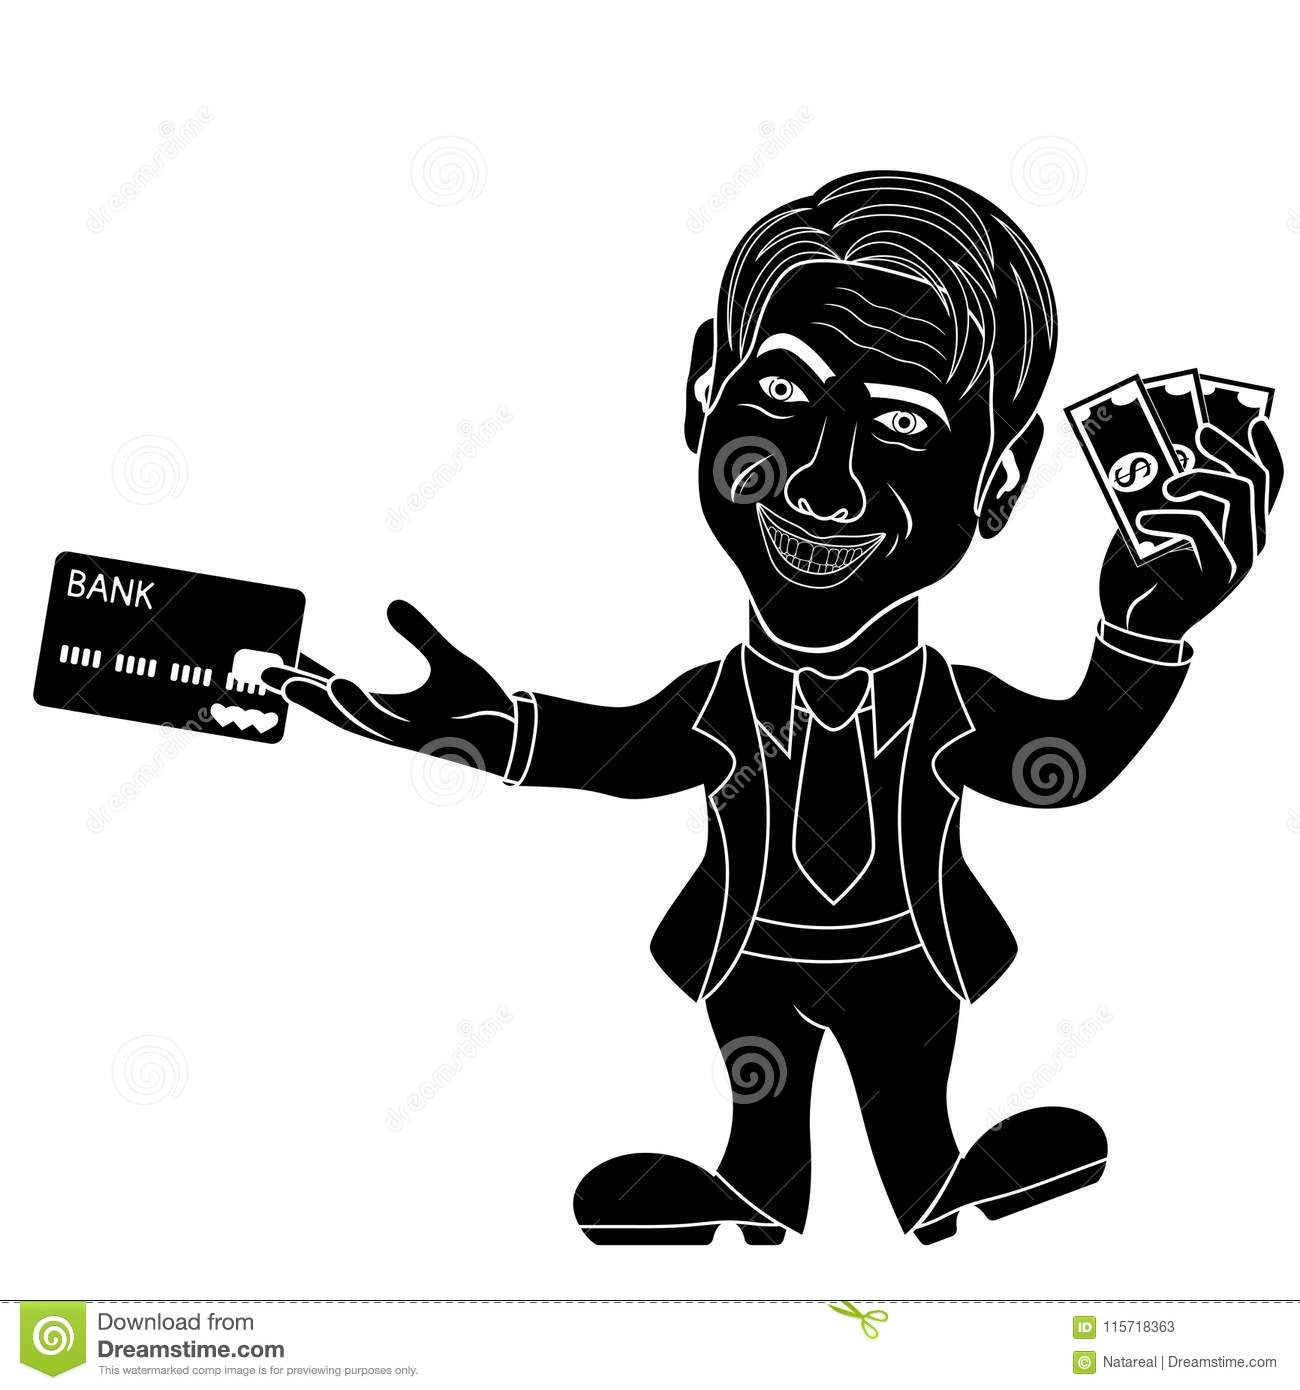 Silhouette of smiling and joyful man holds the dollar bills and credit card cartoon stencil vector illustration